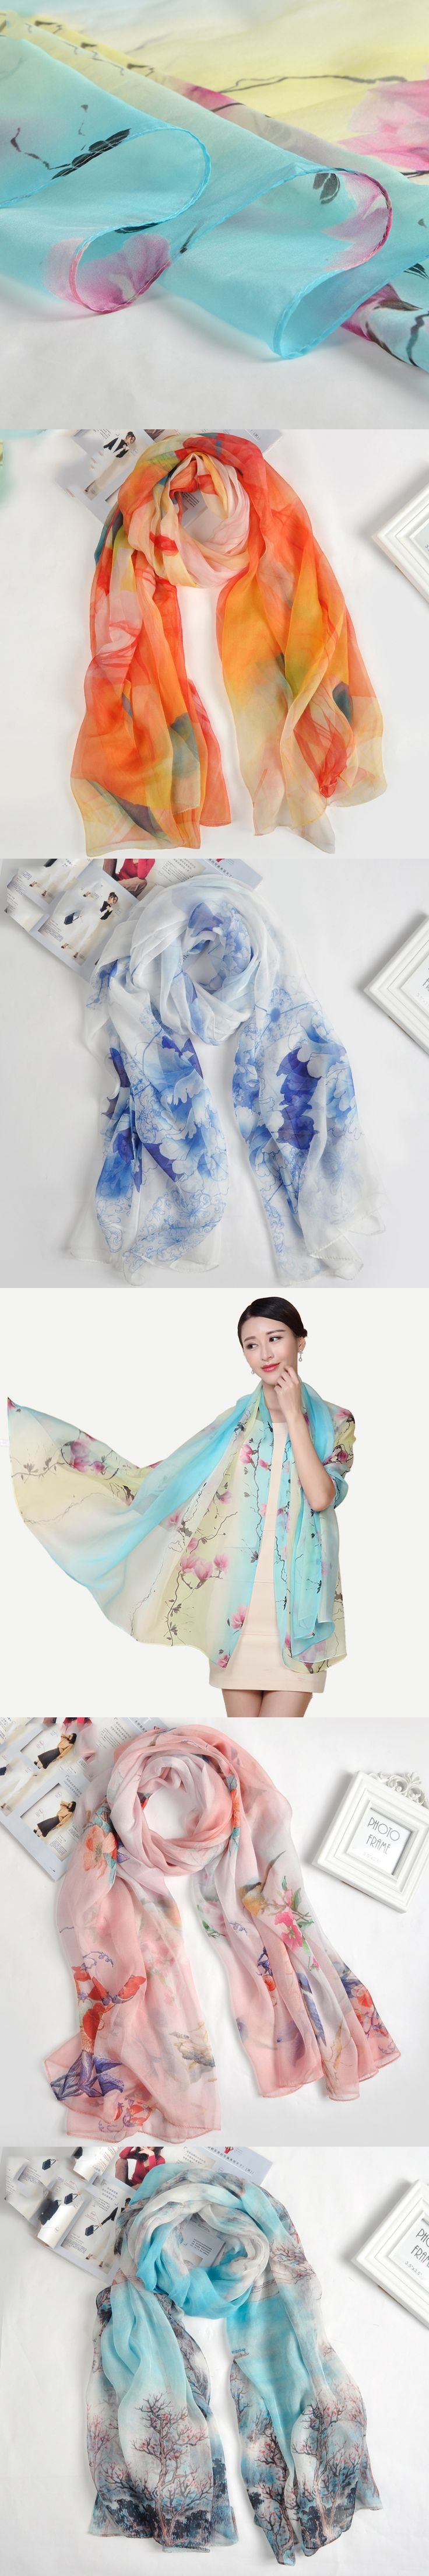 100% Real Silk Scarf Hot Selling Floral Silk Scarf Women Shawl 175x110cm Large Size Satin Scarves for ladies 7 Colors